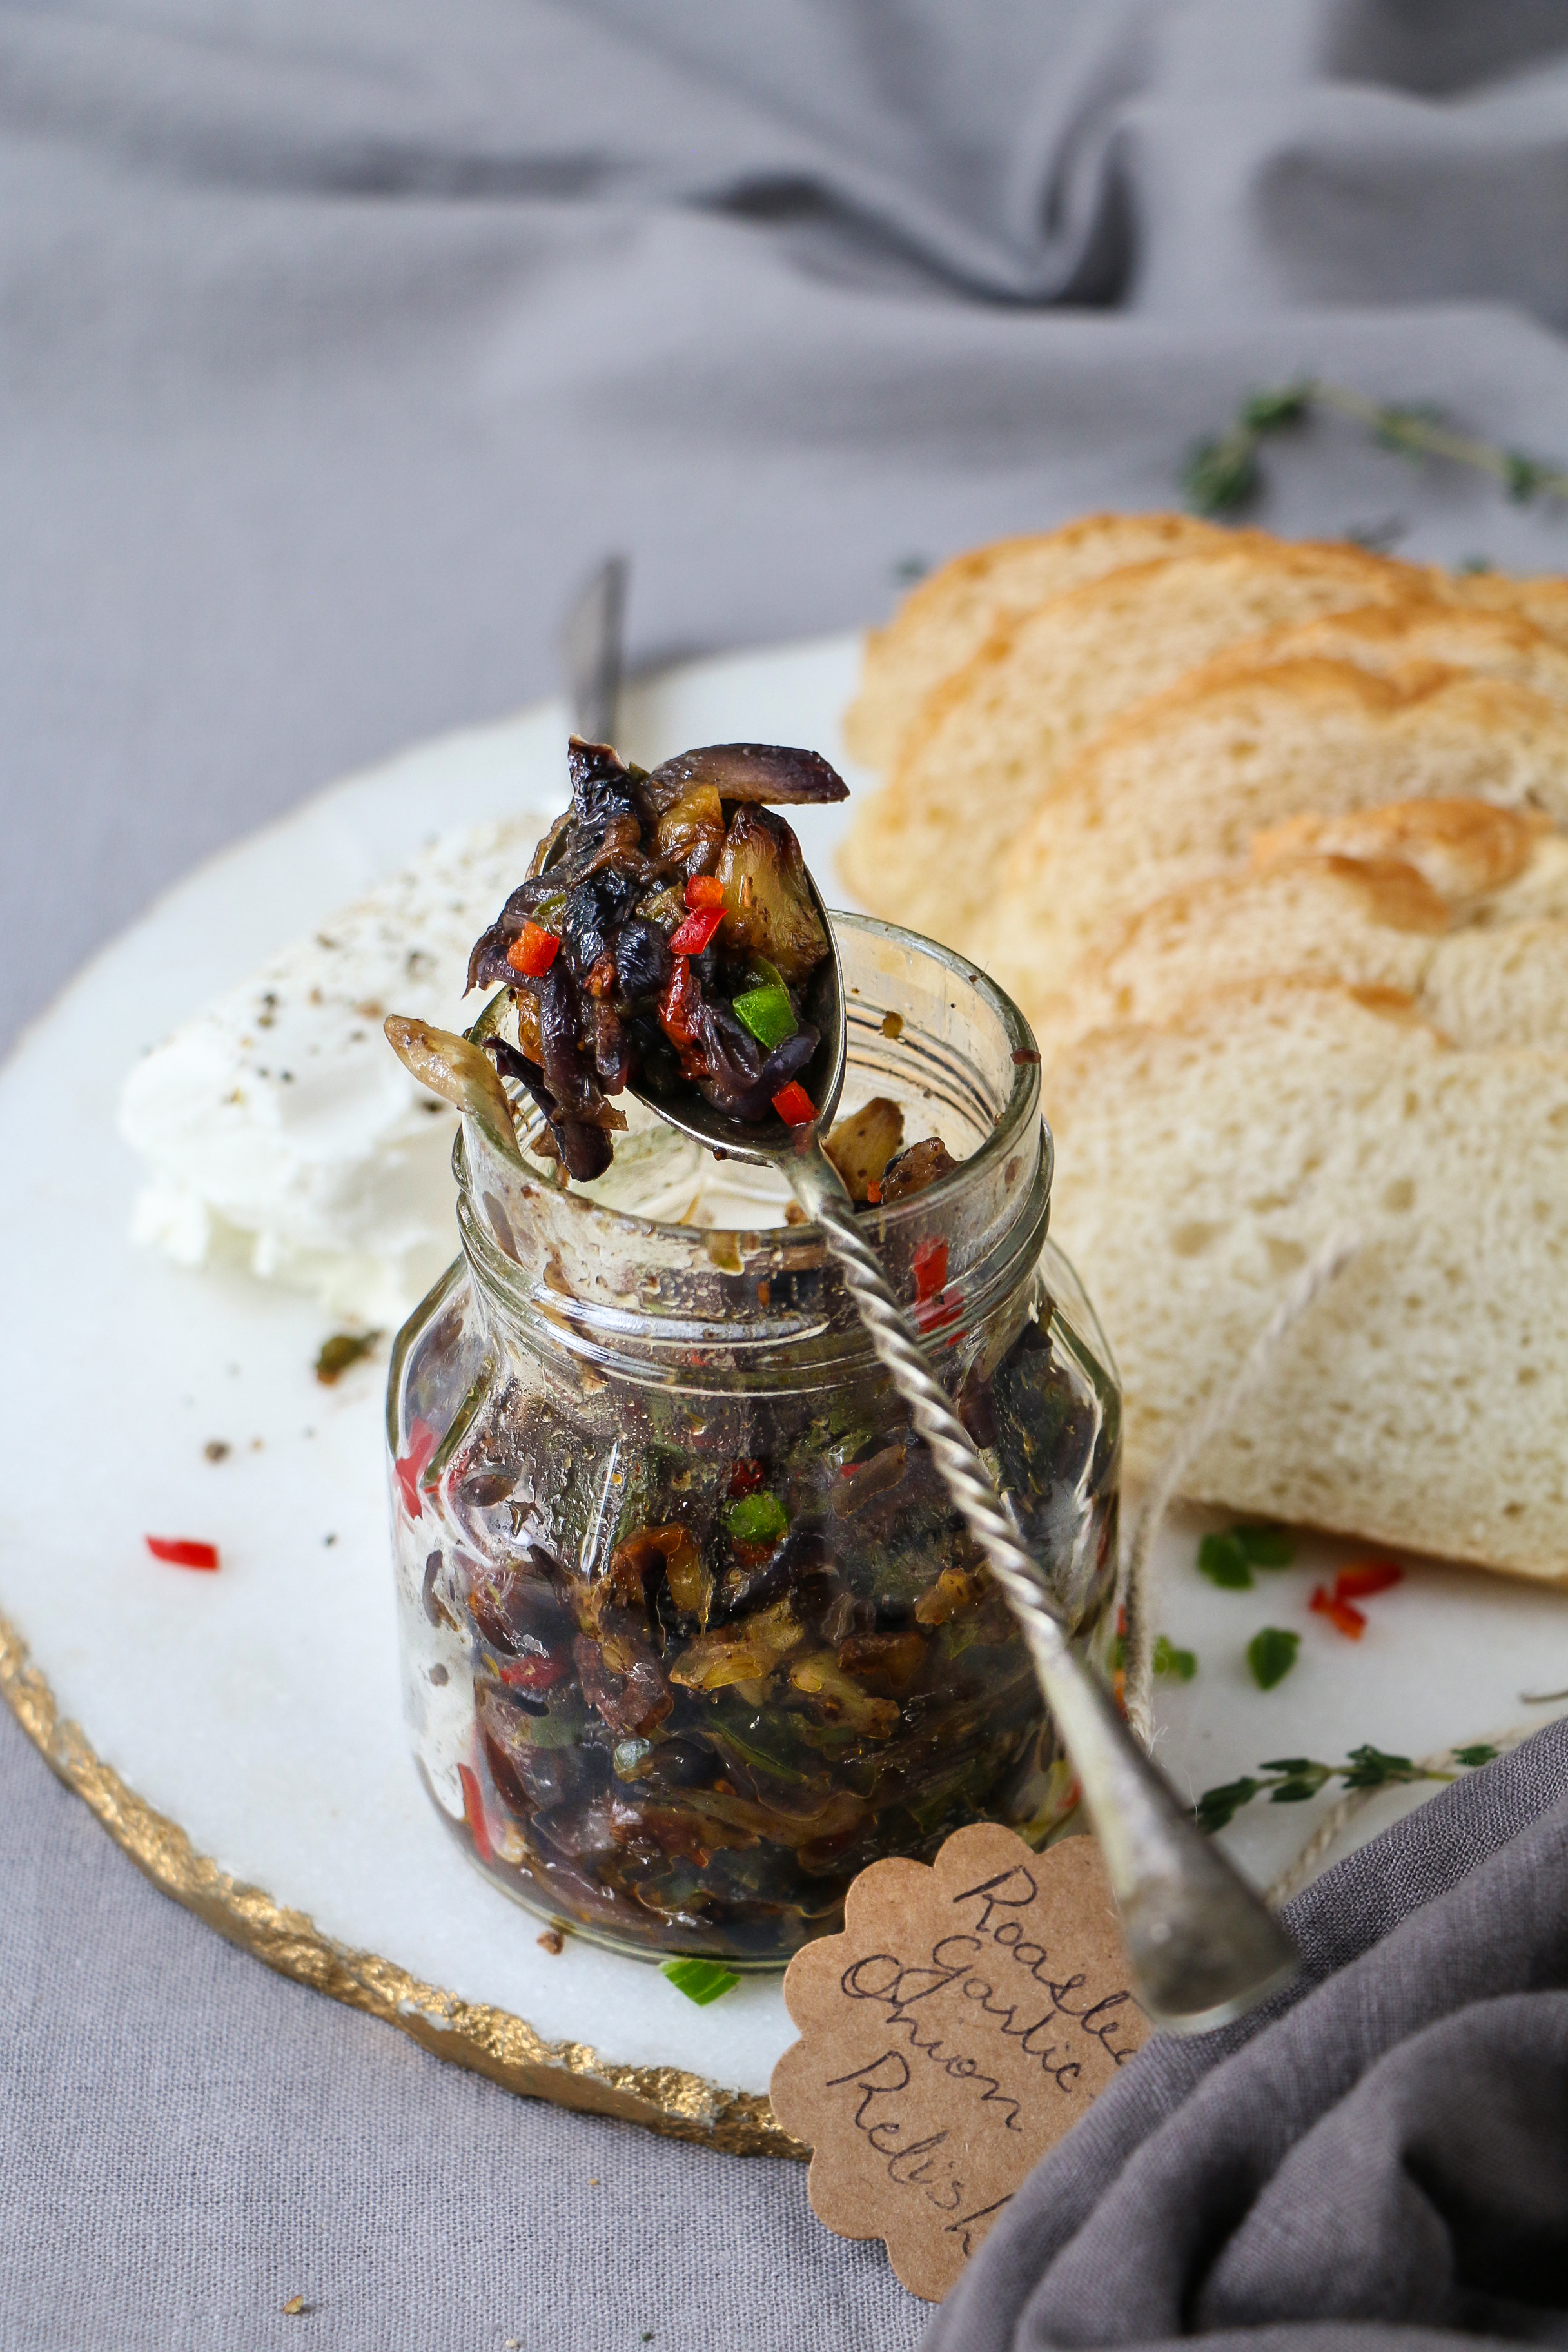 Roasted Garlic and Onion Relish in pickling spices/Bruschetta |foodfashionparty| #garlic